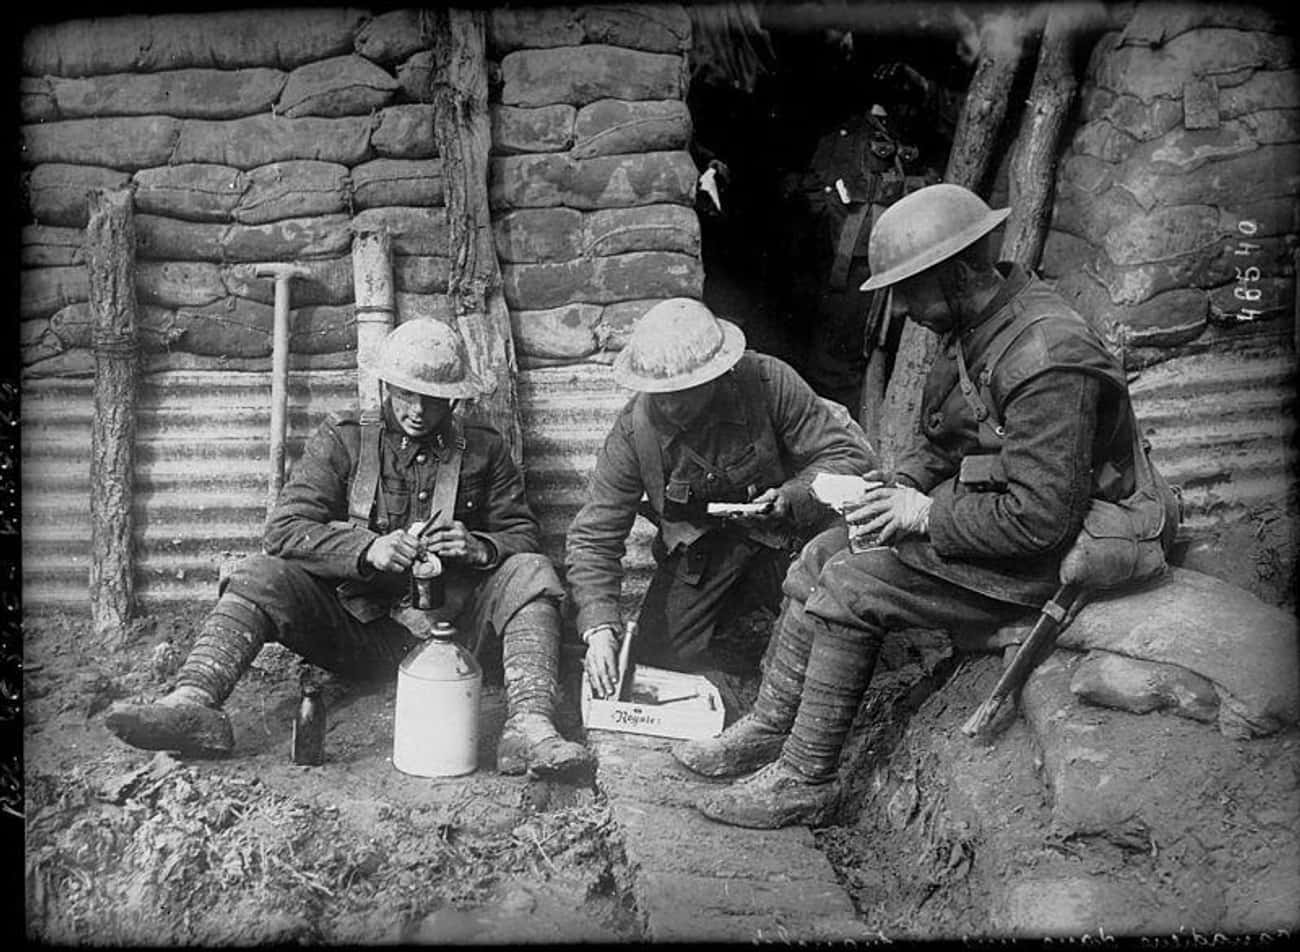 Soldiers Had Equipment To Ster is listed (or ranked) 2 on the list What Was Hygiene Like For Soldiers In WWI Trench Warfare?